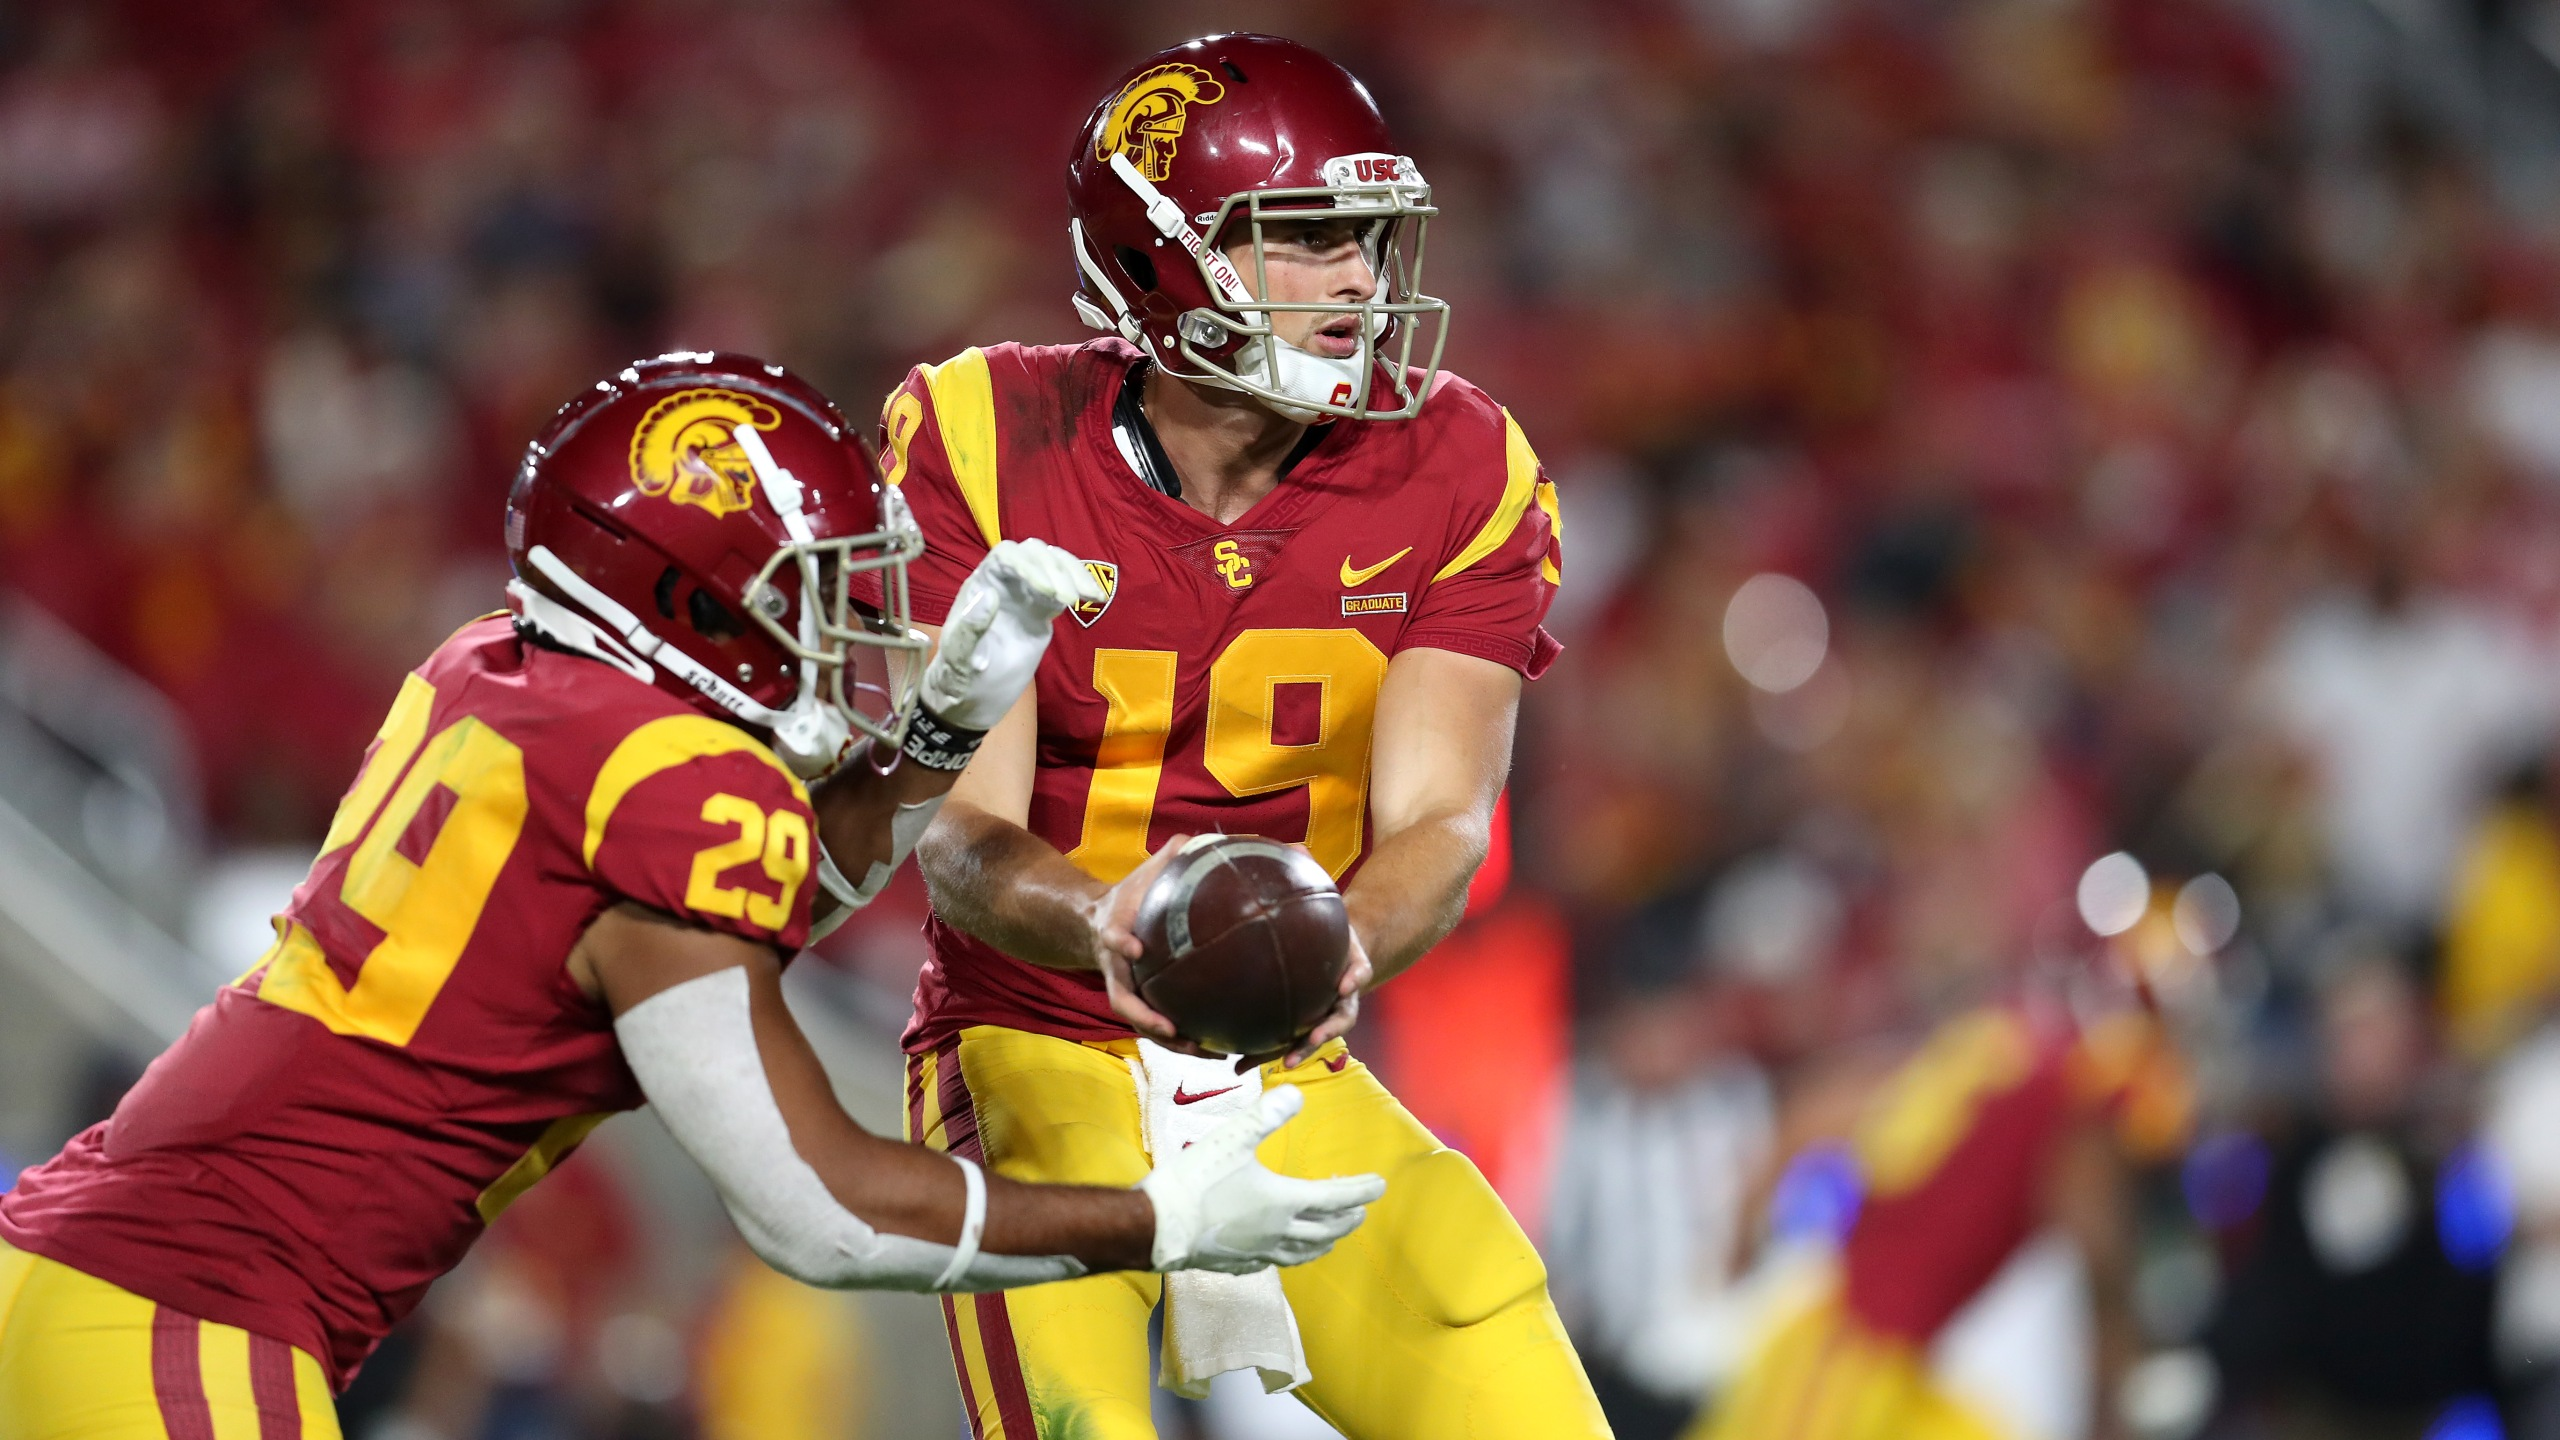 Matt Fink, No. 19, of the USC Trojans hands off to teammate Vavae Malepeai, No. 29, during a match against the Utah Utes at Los Angeles Memorial Coliseum on Sept. 20, 2019. (Credit: Meg Oliphant/Getty Images)